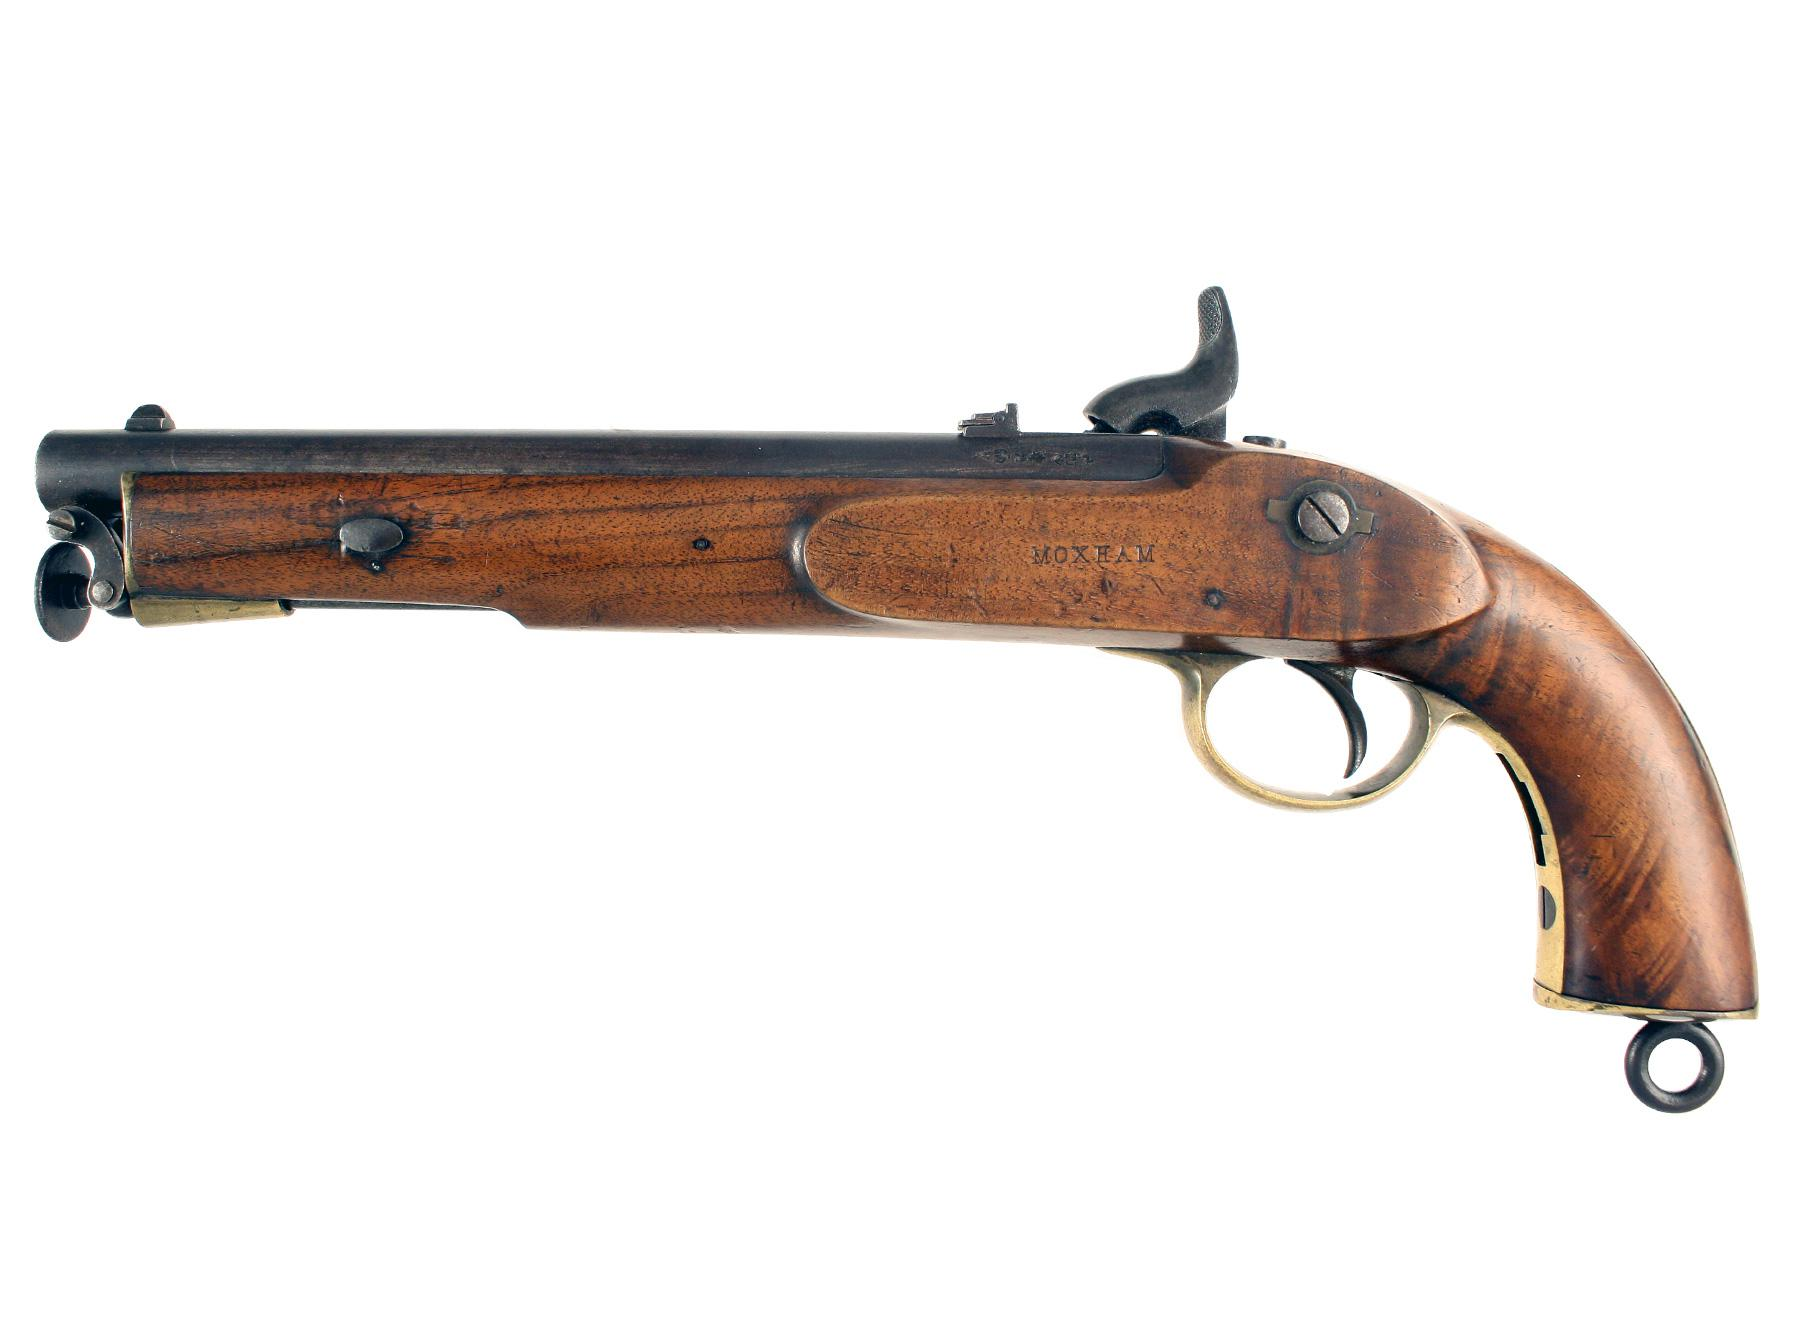 A Scarce Lancers Pistol with Shoulder Stock